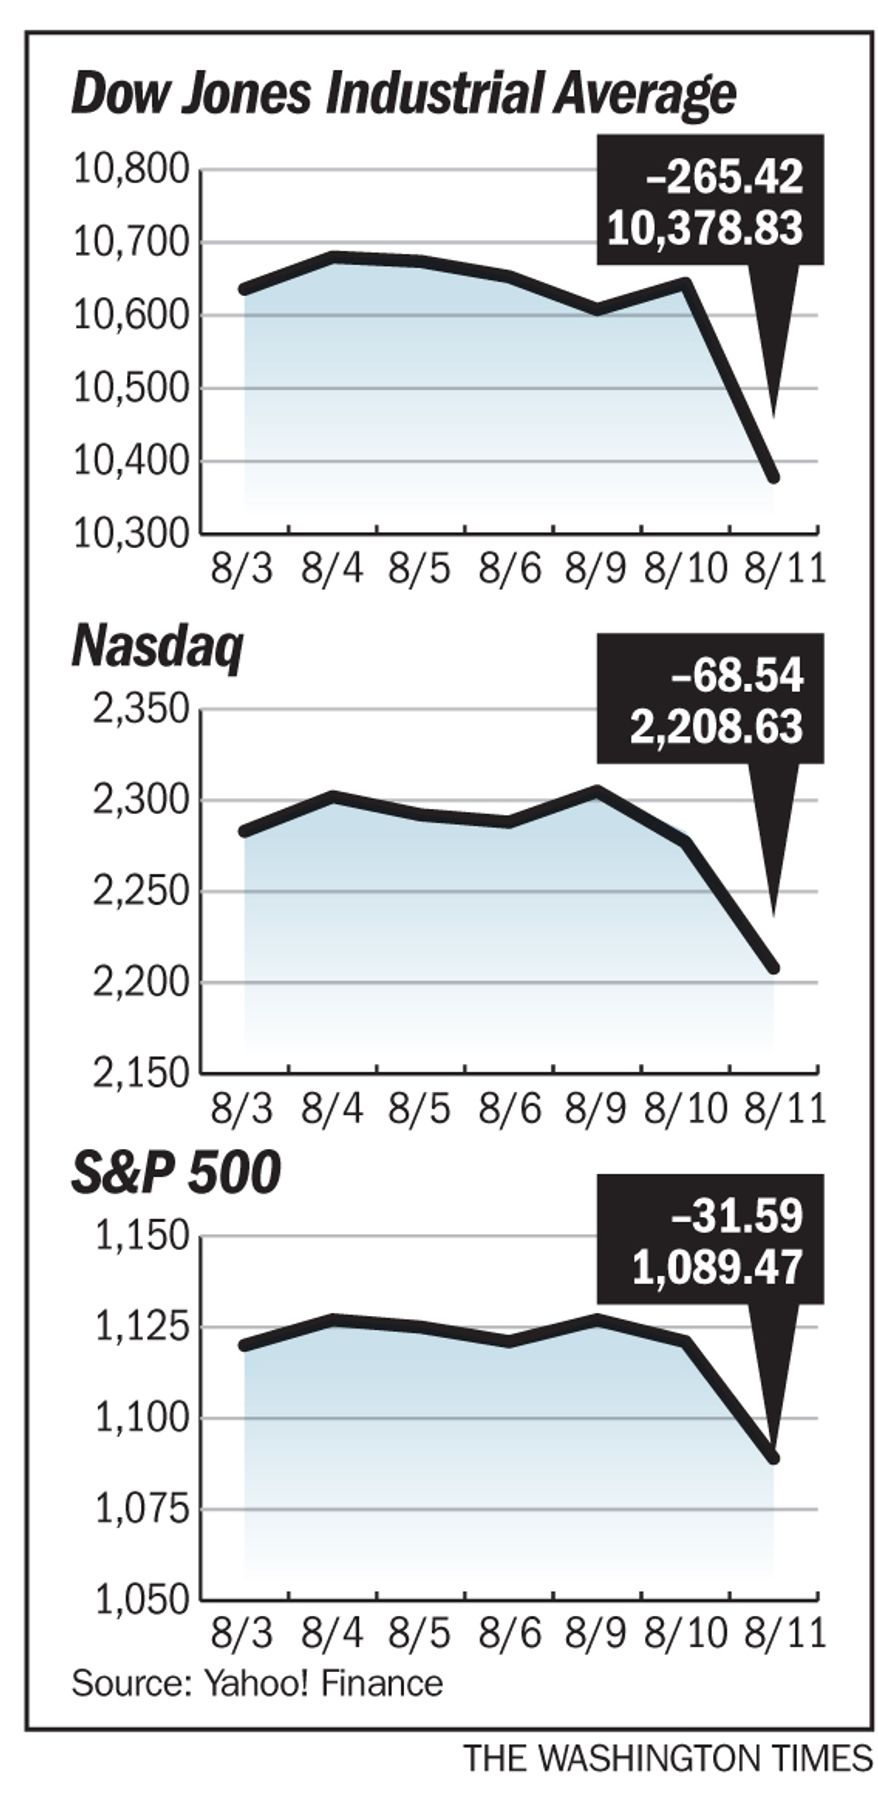 All of the markets dropped for the week of Aug. 3-11, 2010.